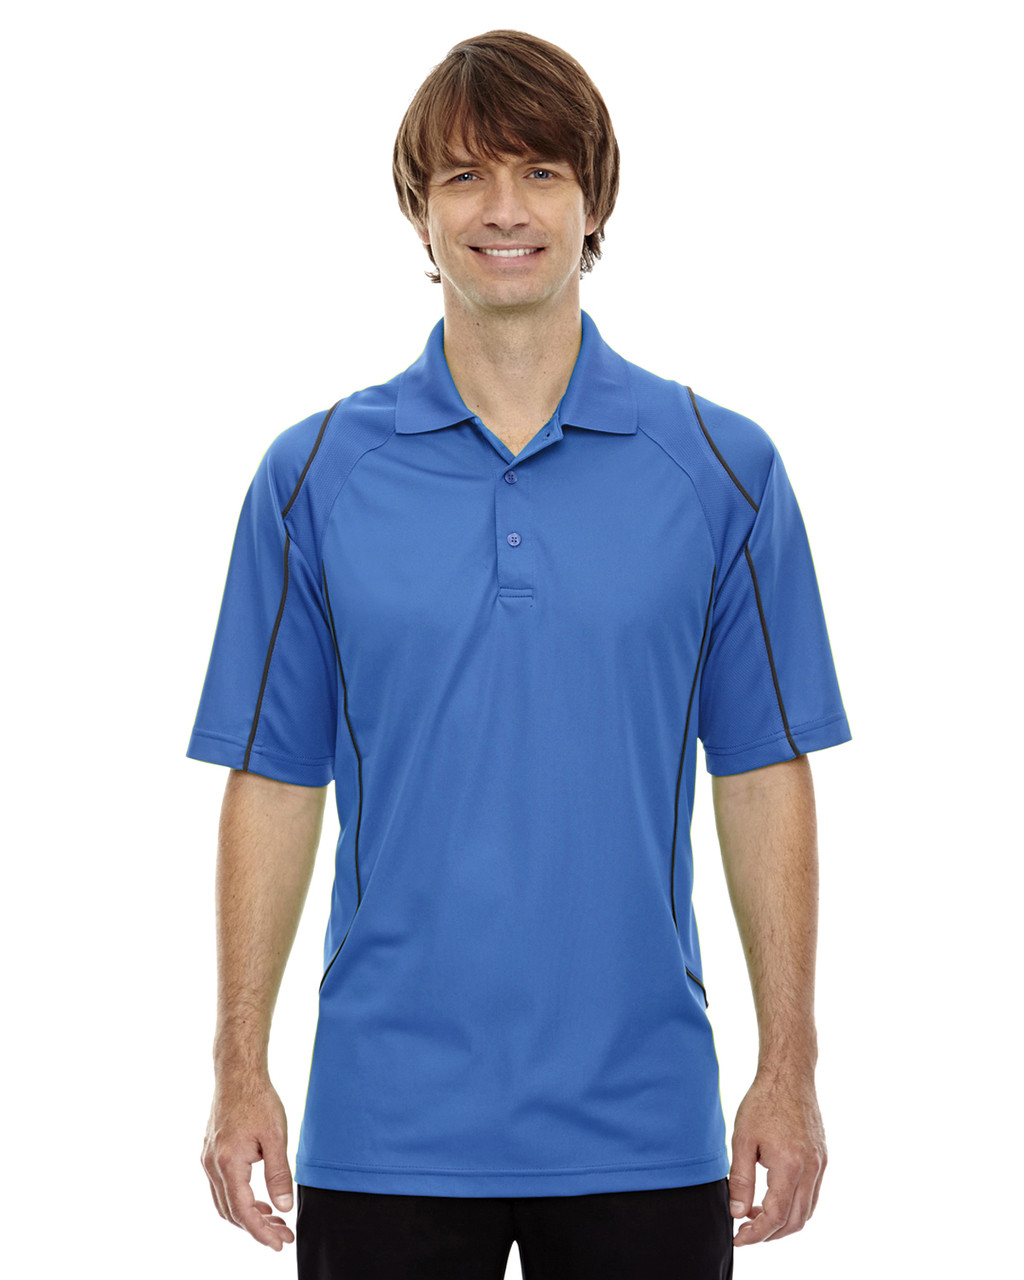 Ltnaut Blu - 85107 Ash City - Extreme Eperformance Men's Velocity Polo Shirt with Piping